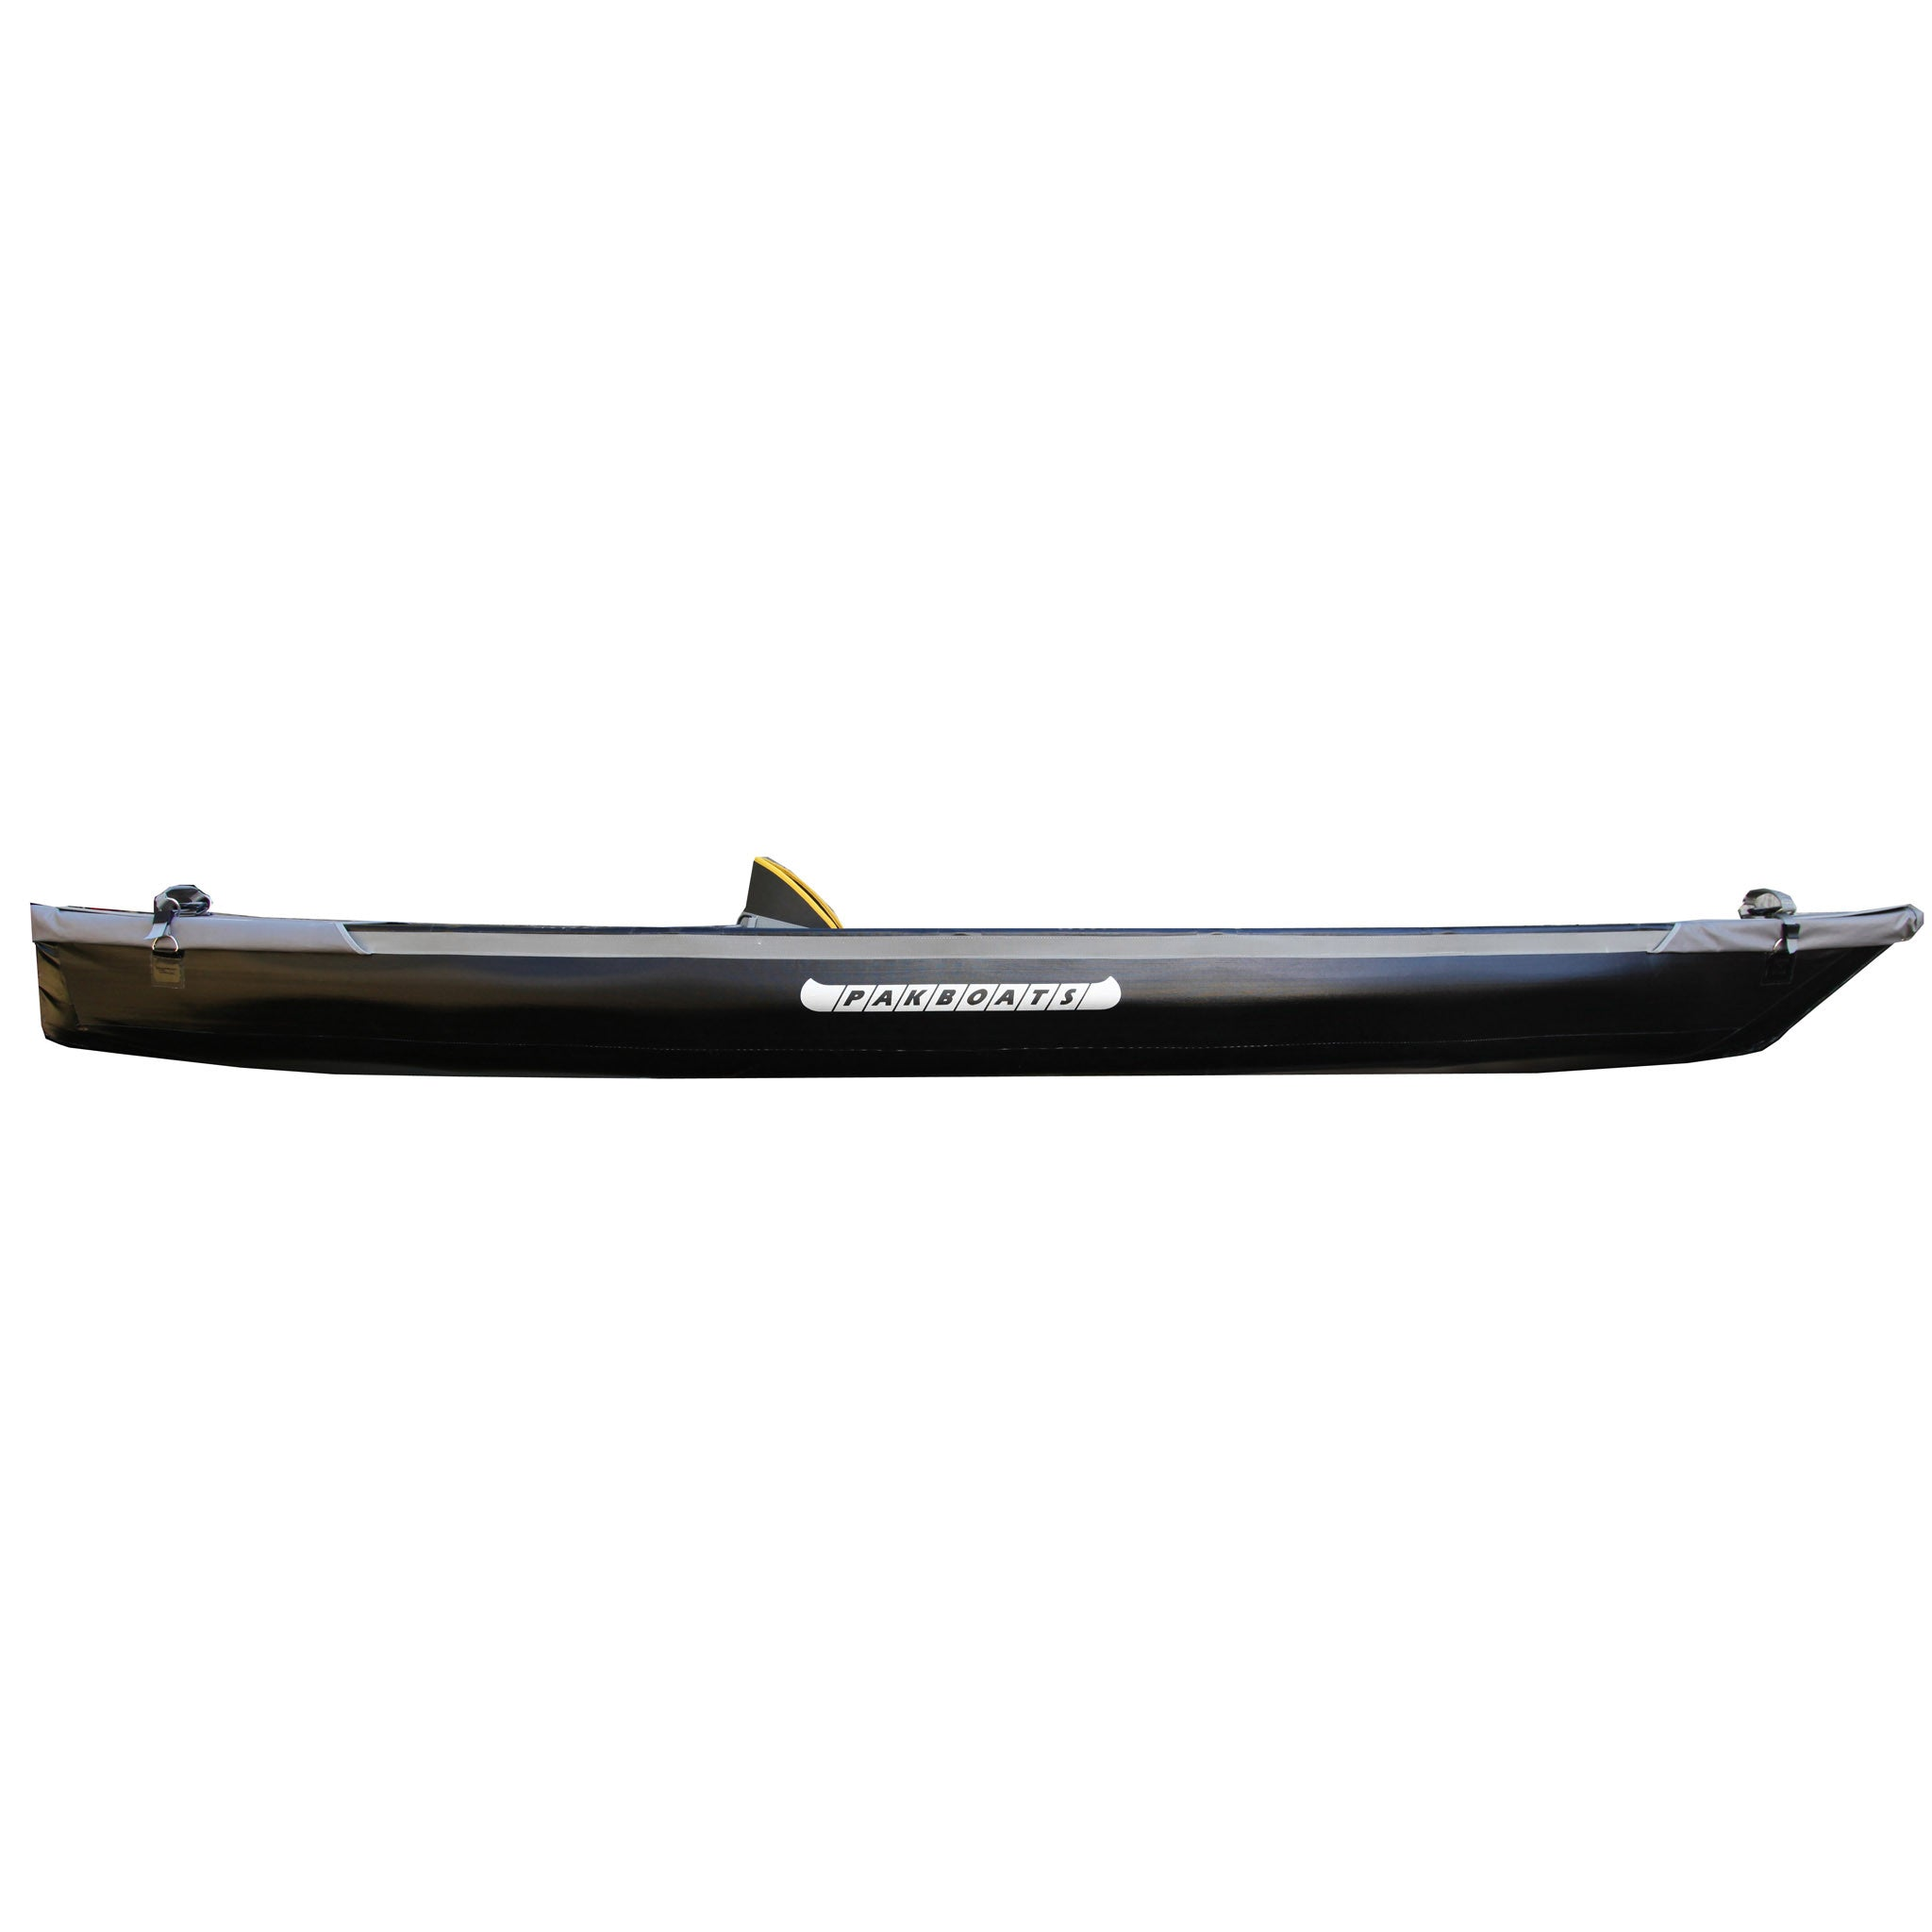 Puffin Saco folding kayak in black